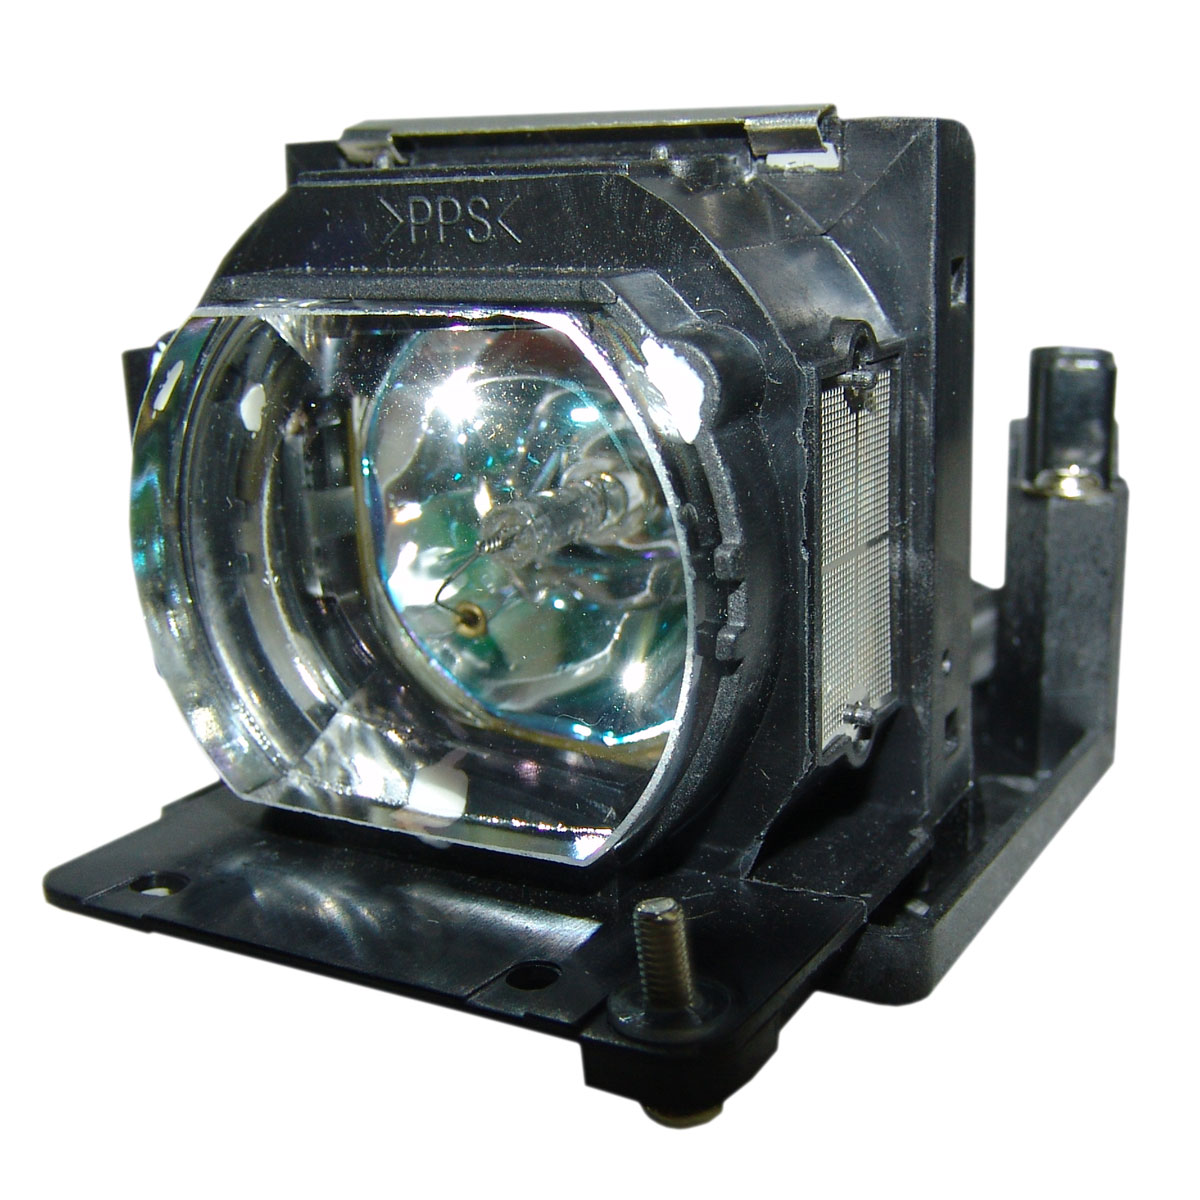 Lutema Economy for Geha 60-201913 Projector Lamp (Bulb Only) - image 5 de 5